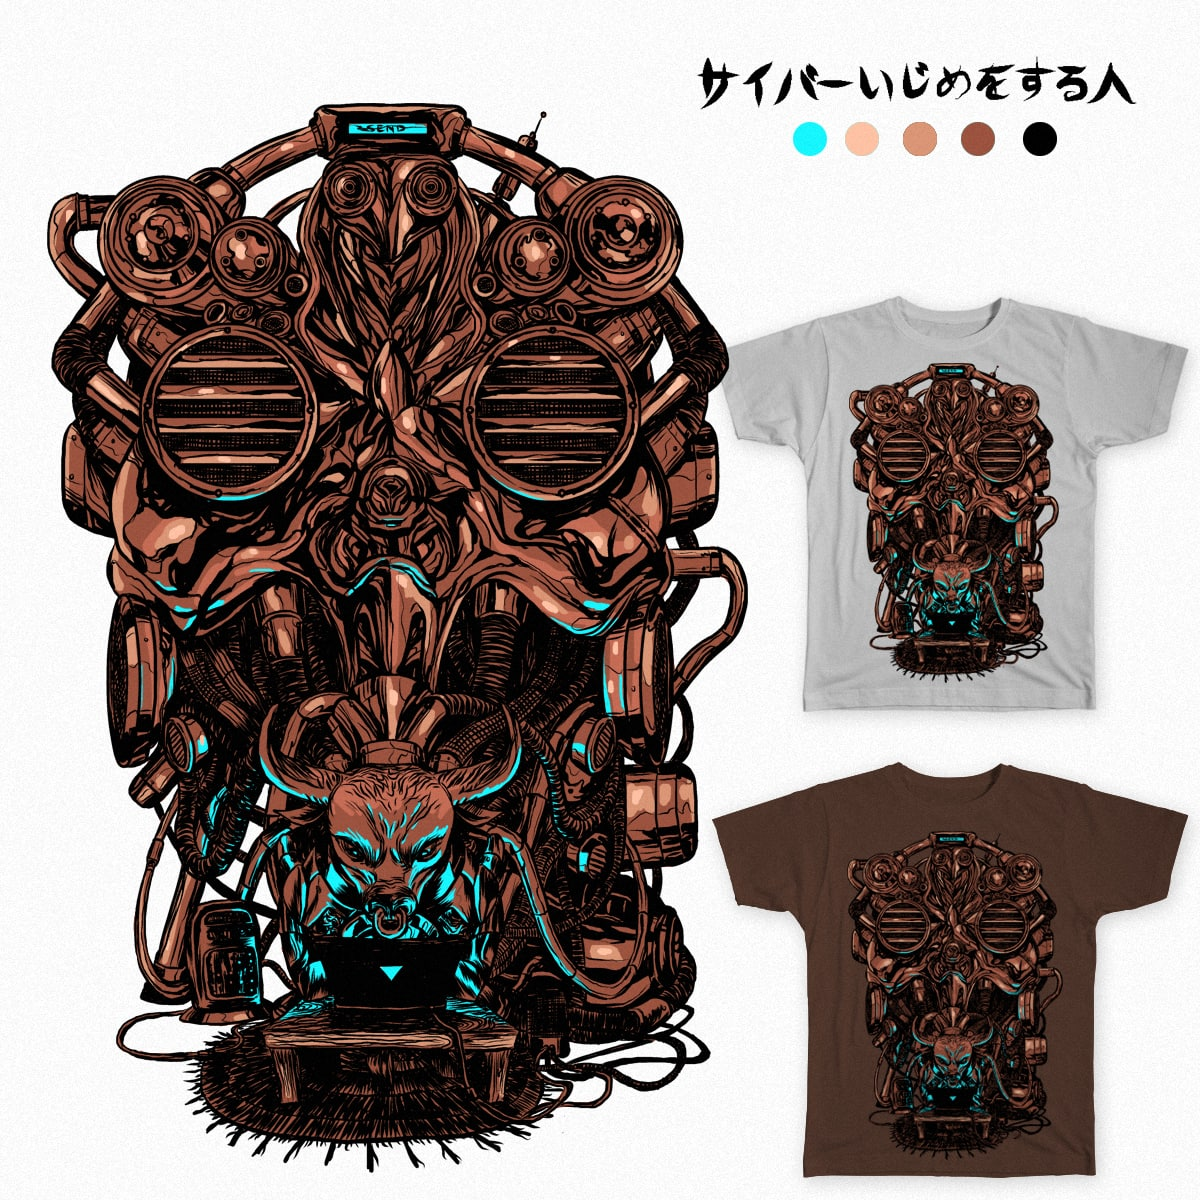 Cyber Bully by Gee Hale on Threadless